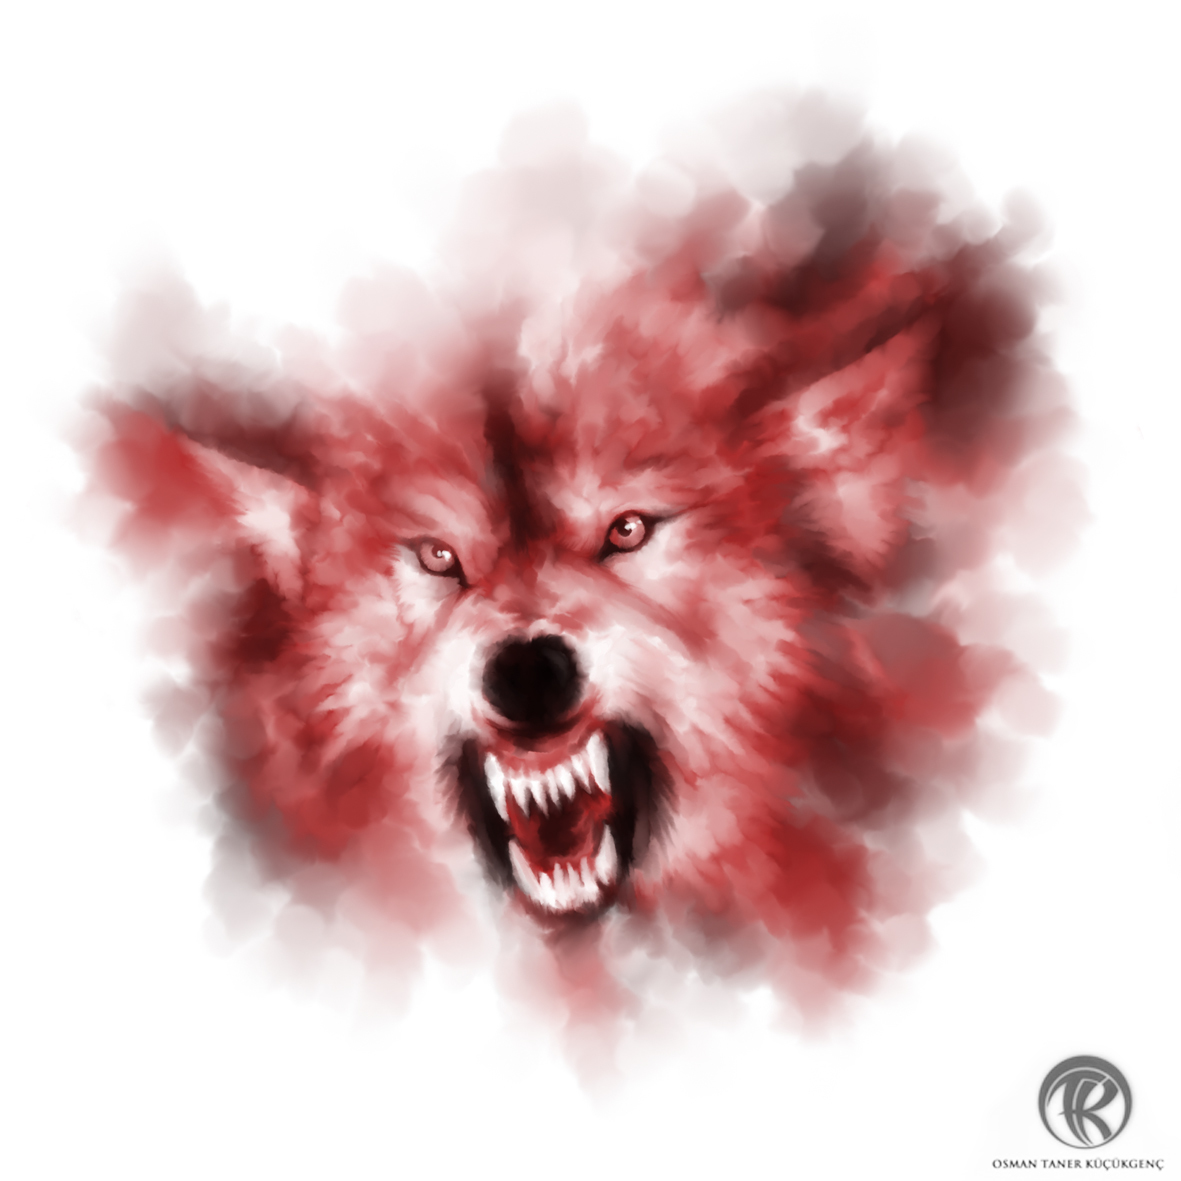 WOLF ALPHA Digital Painting wacom intuos 5 - Photoshop CS5 ( Original )